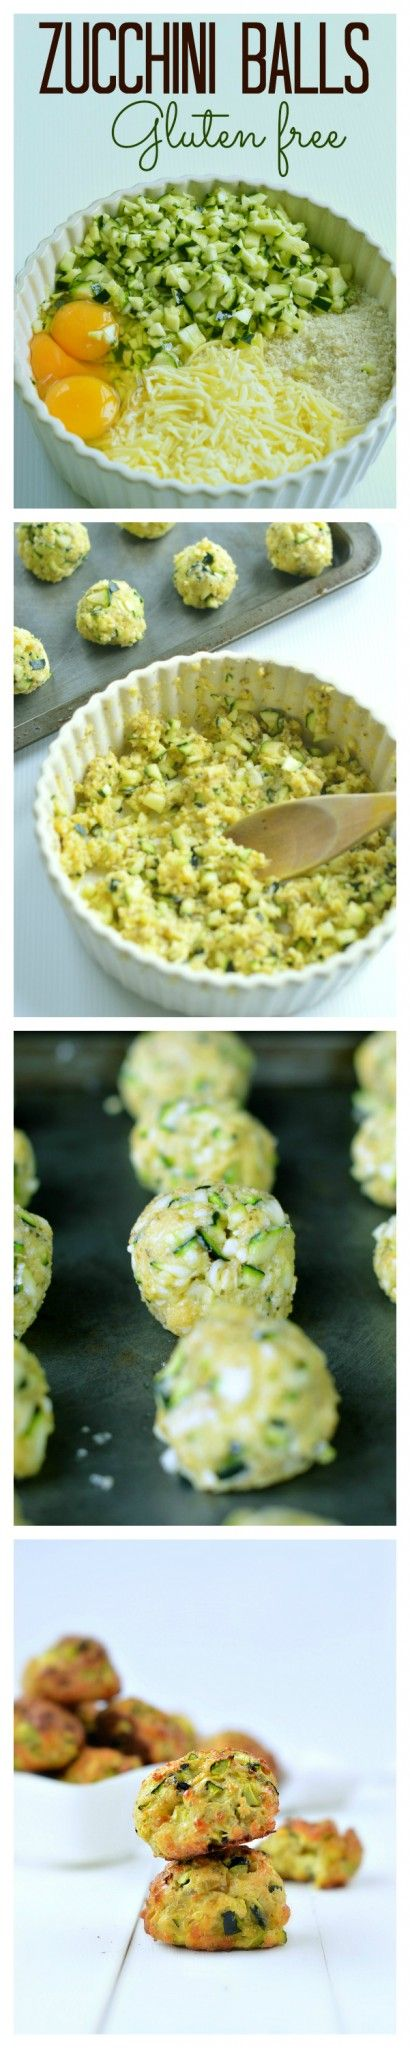 Zucchini balls| Zucchini recipes healthy clean eating appetizers | clean eating zucchini recipes